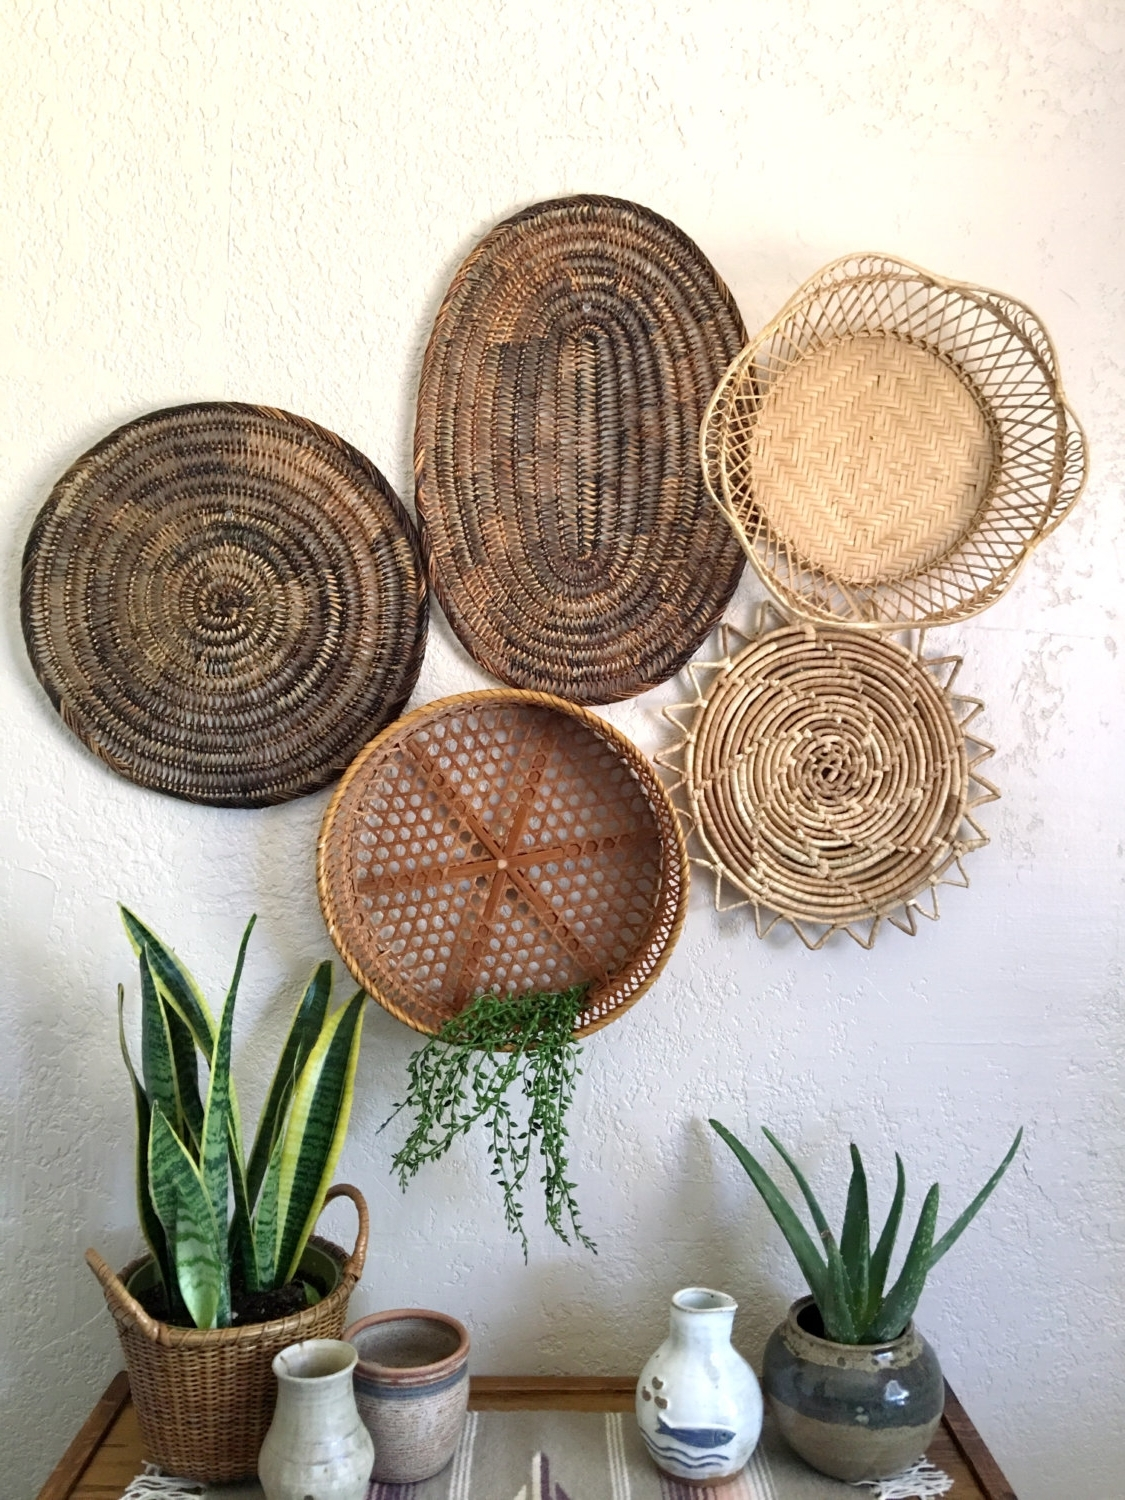 Current Vintage Oval Brown Woven Wicker Basket / Trivet / Placemat, Woven Intended For Woven Basket Wall Art (View 4 of 15)